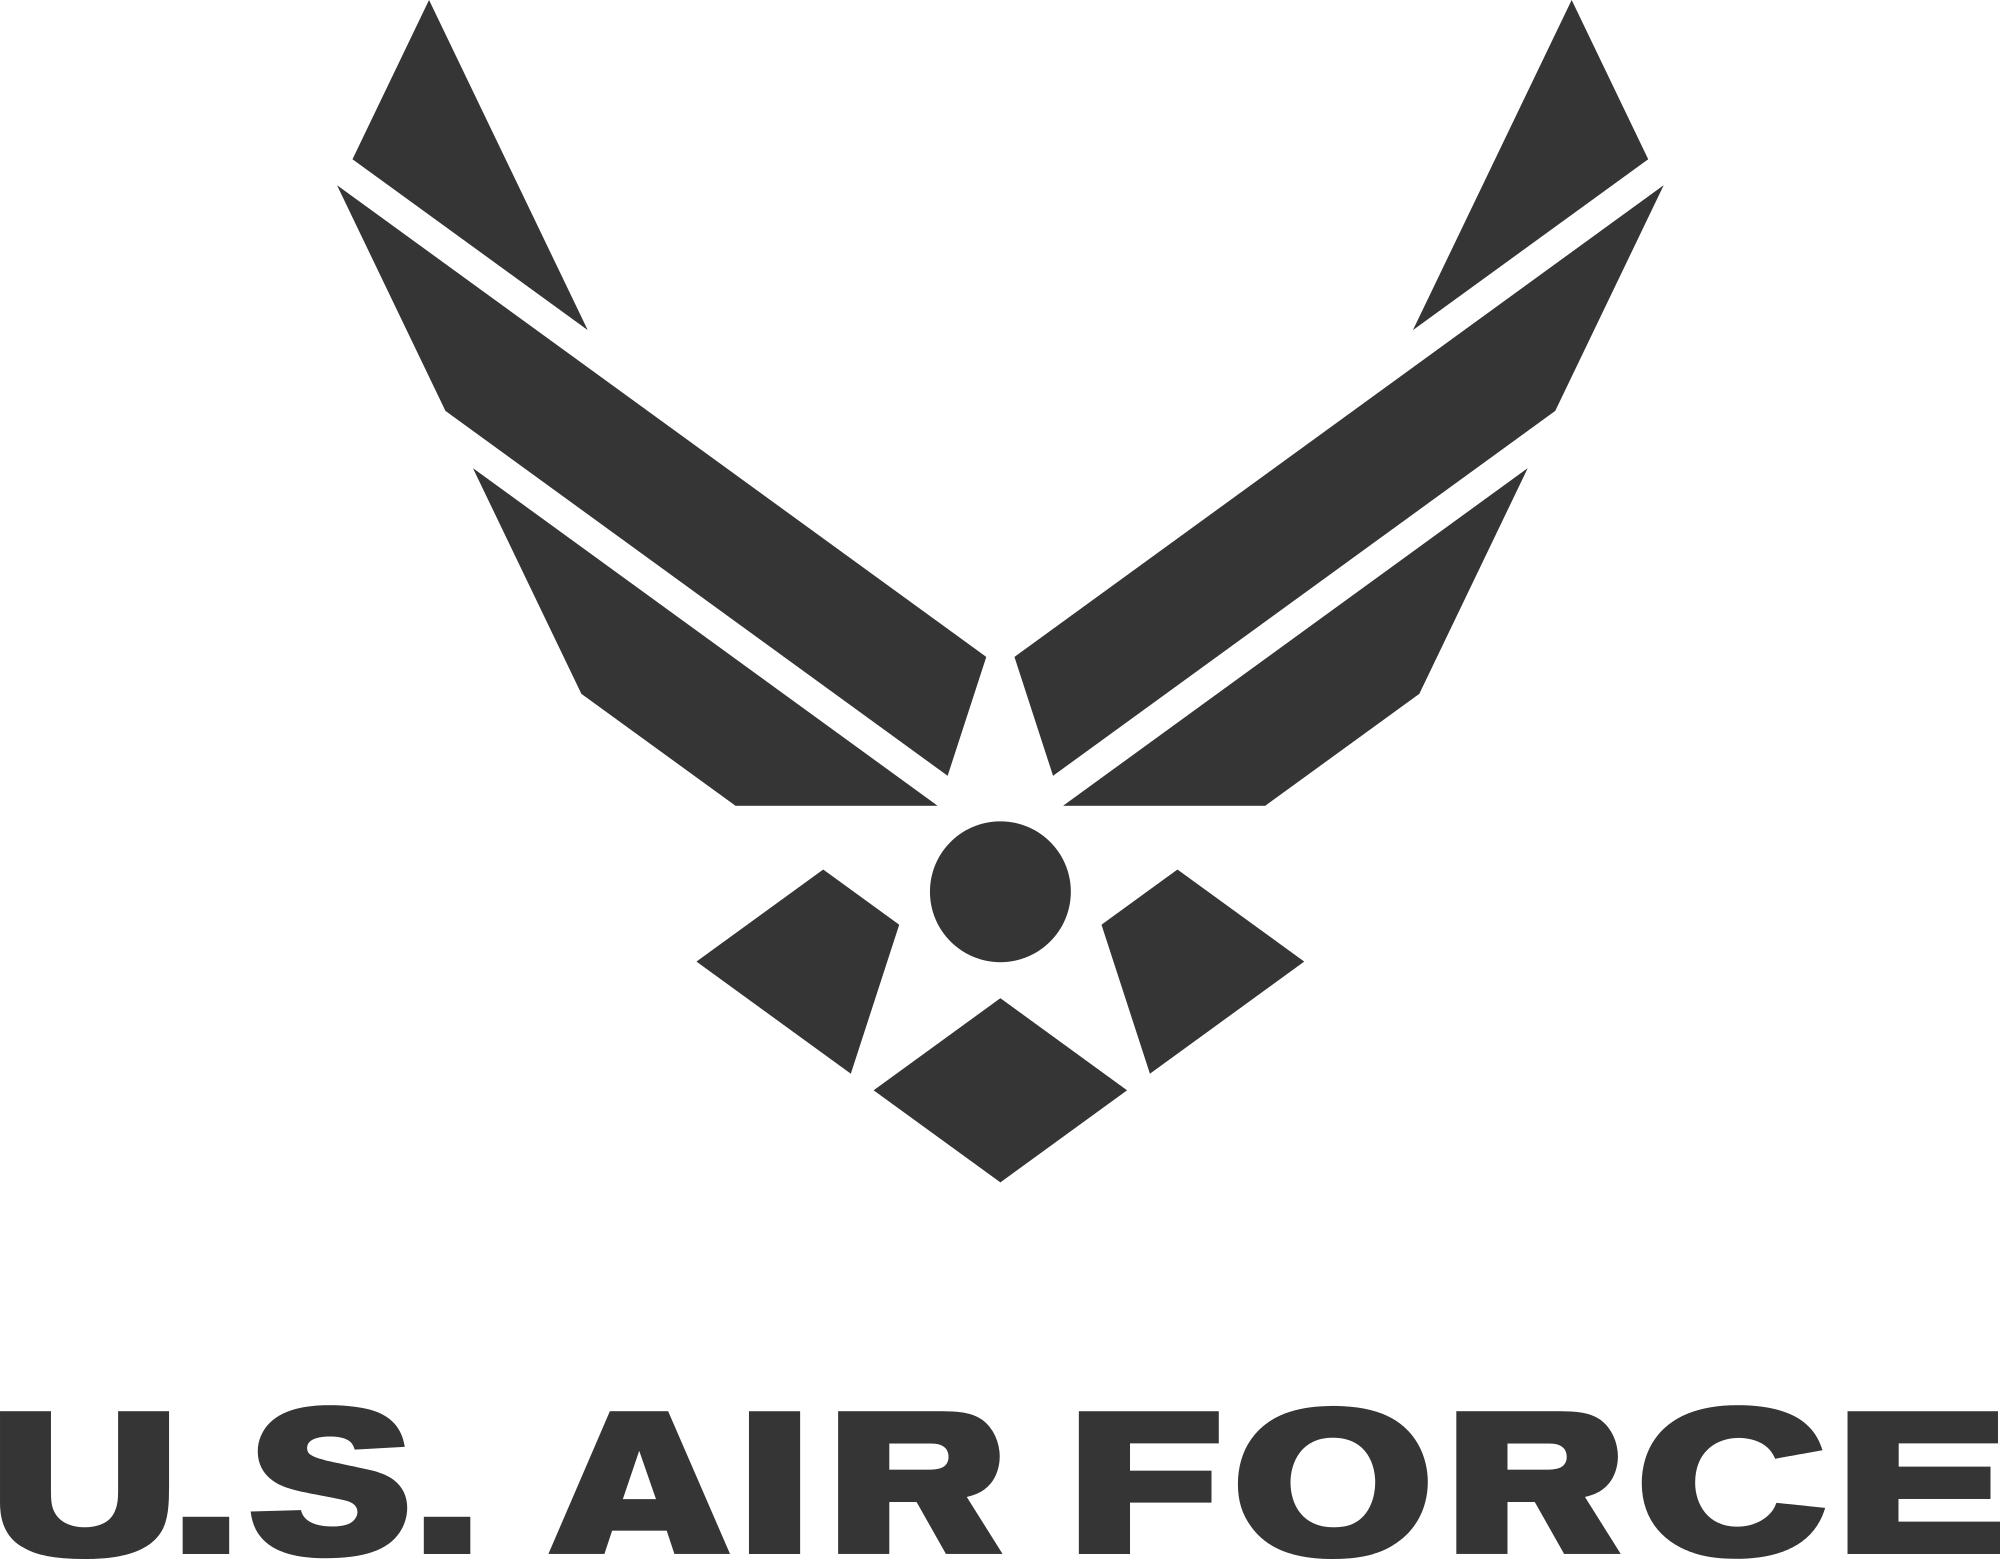 Air Force Svg Pdf Png Studio3 File By Lmtembroiderydesigns Air Force Symbol Air Force Tattoo Air Force Mom